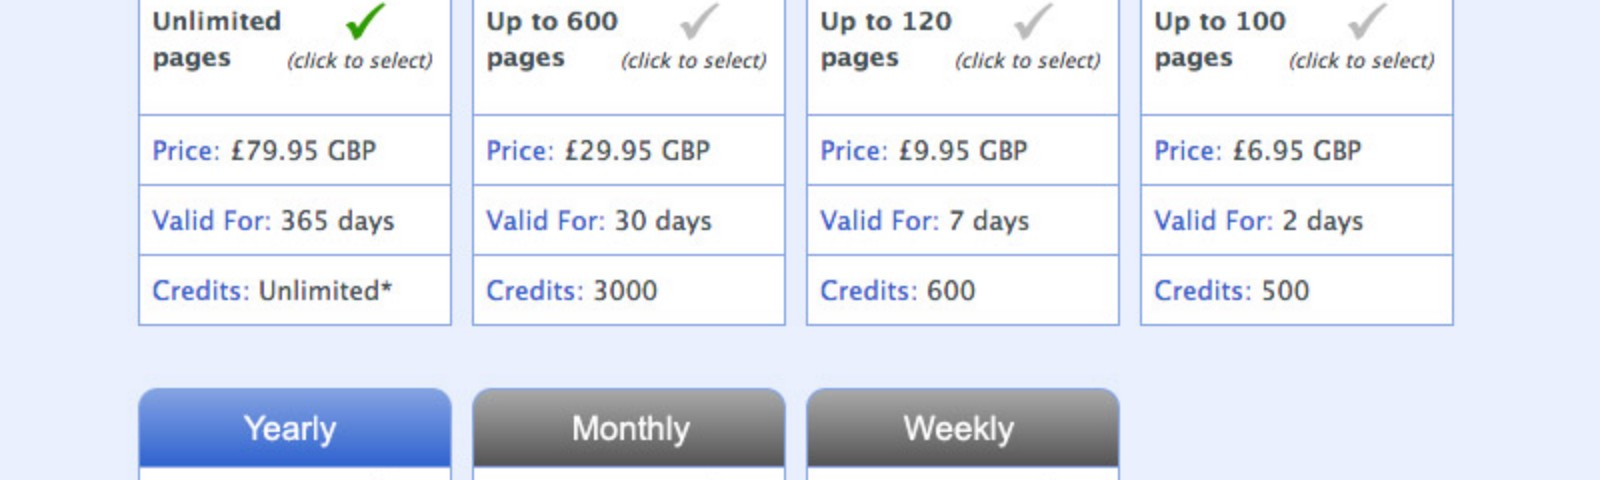 The current and suggested subscription options, with the latter being more simplified, just showing yearly/monthly/weekly.